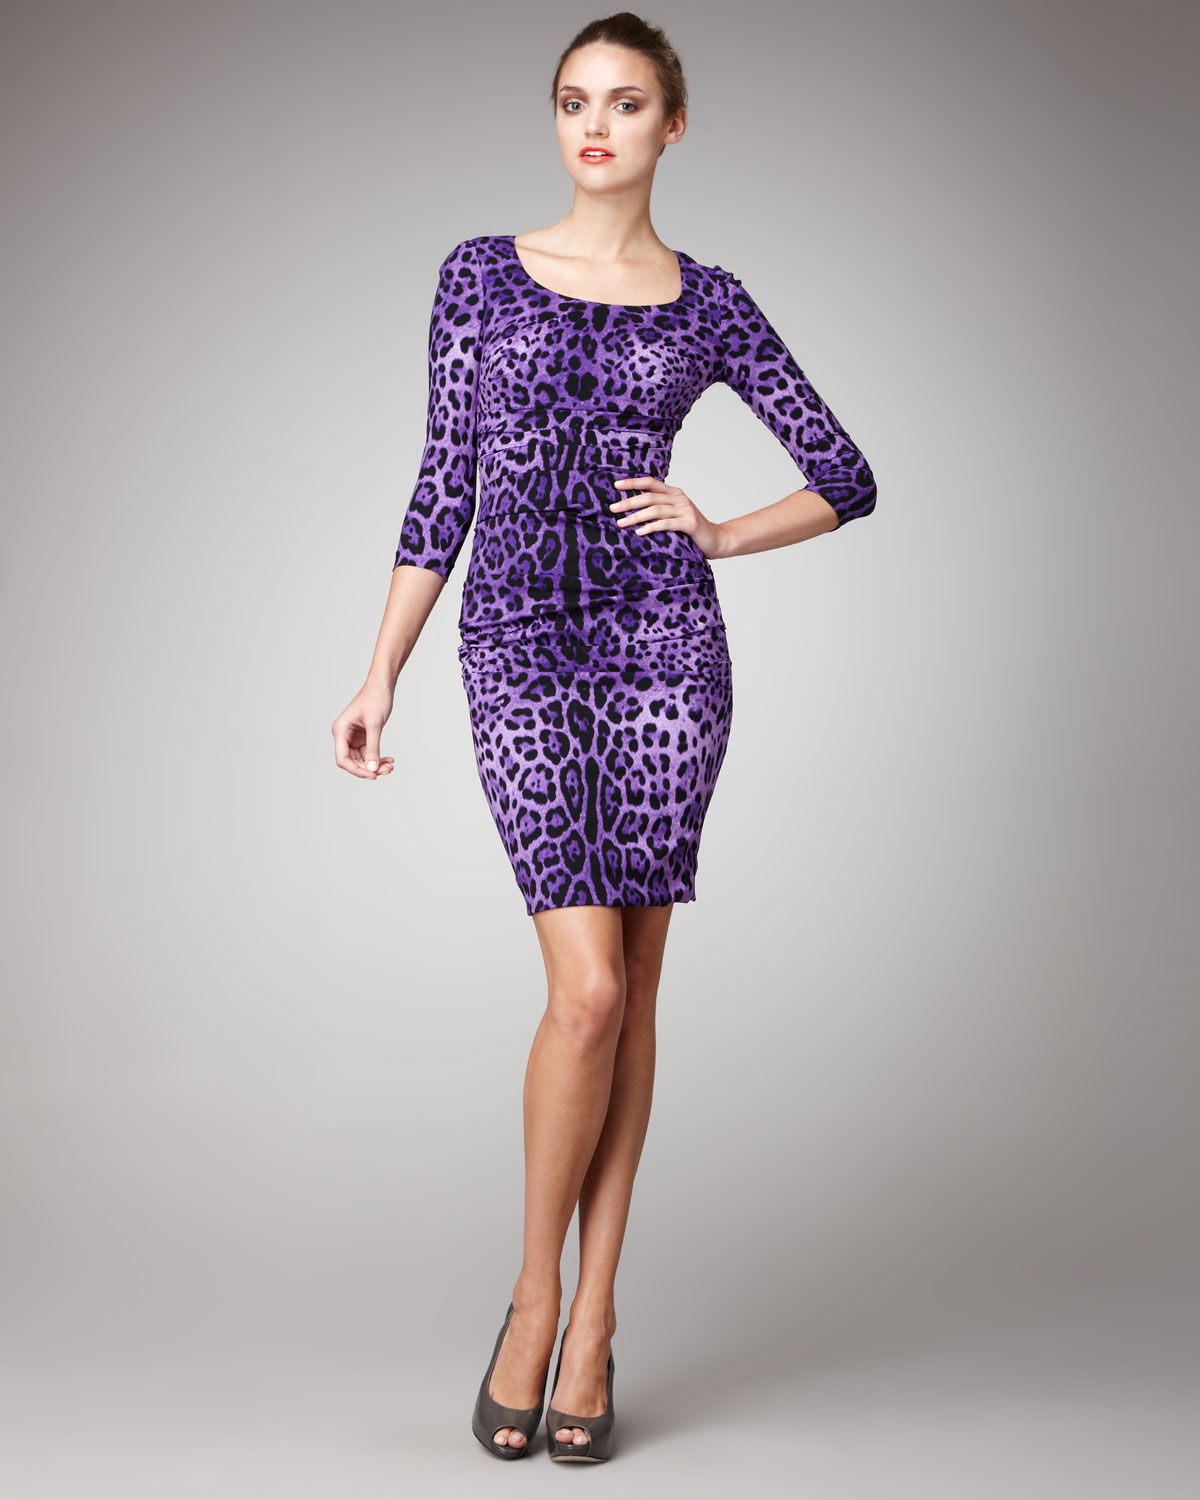 Lyst - Dolce   Gabbana Leopard-print Sheath Dress in Purple 7a3716d0c